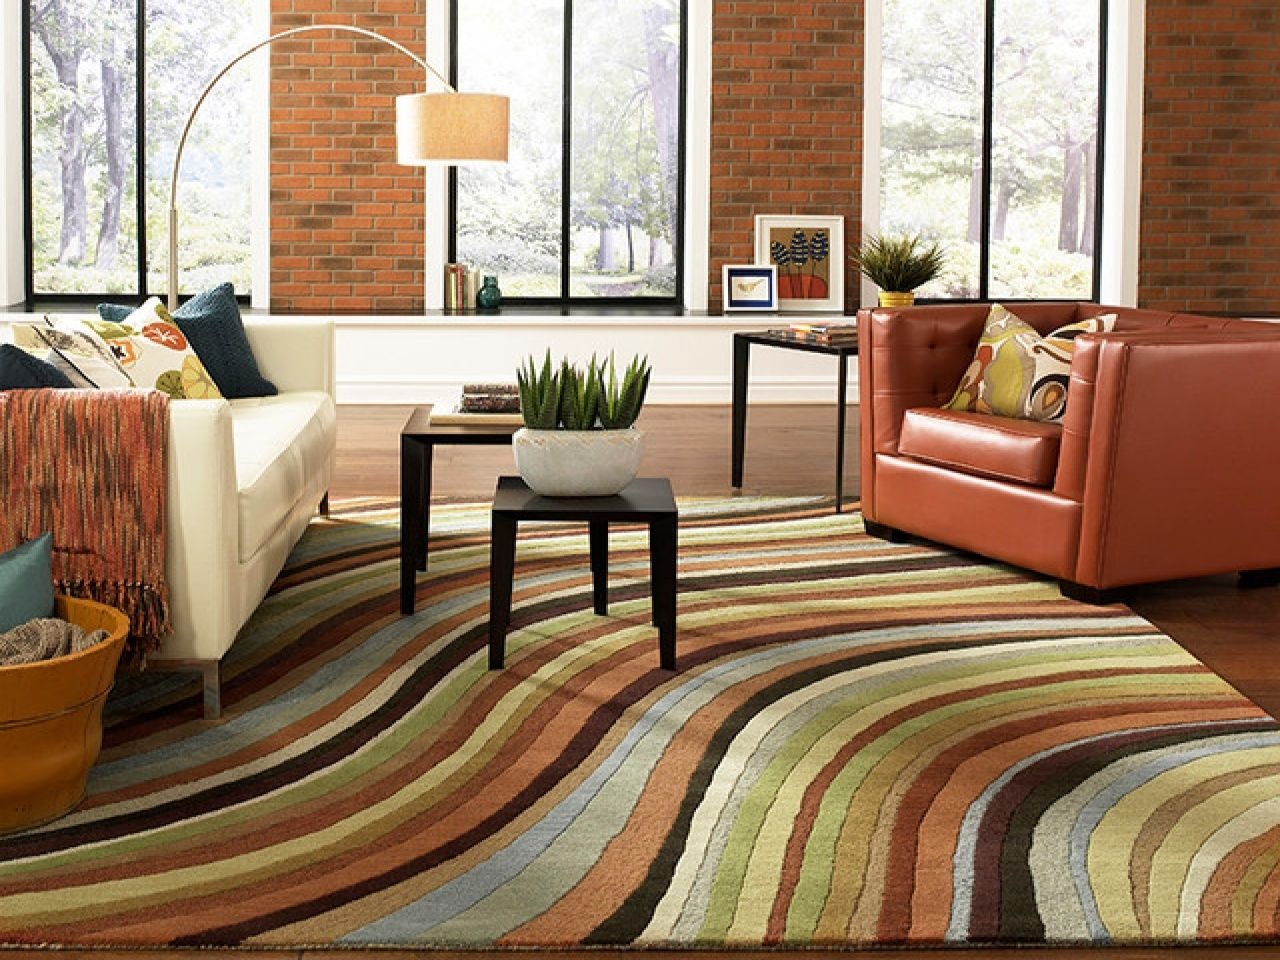 Extra Large Living Room Rugs For Your Home Beautiful Decor With